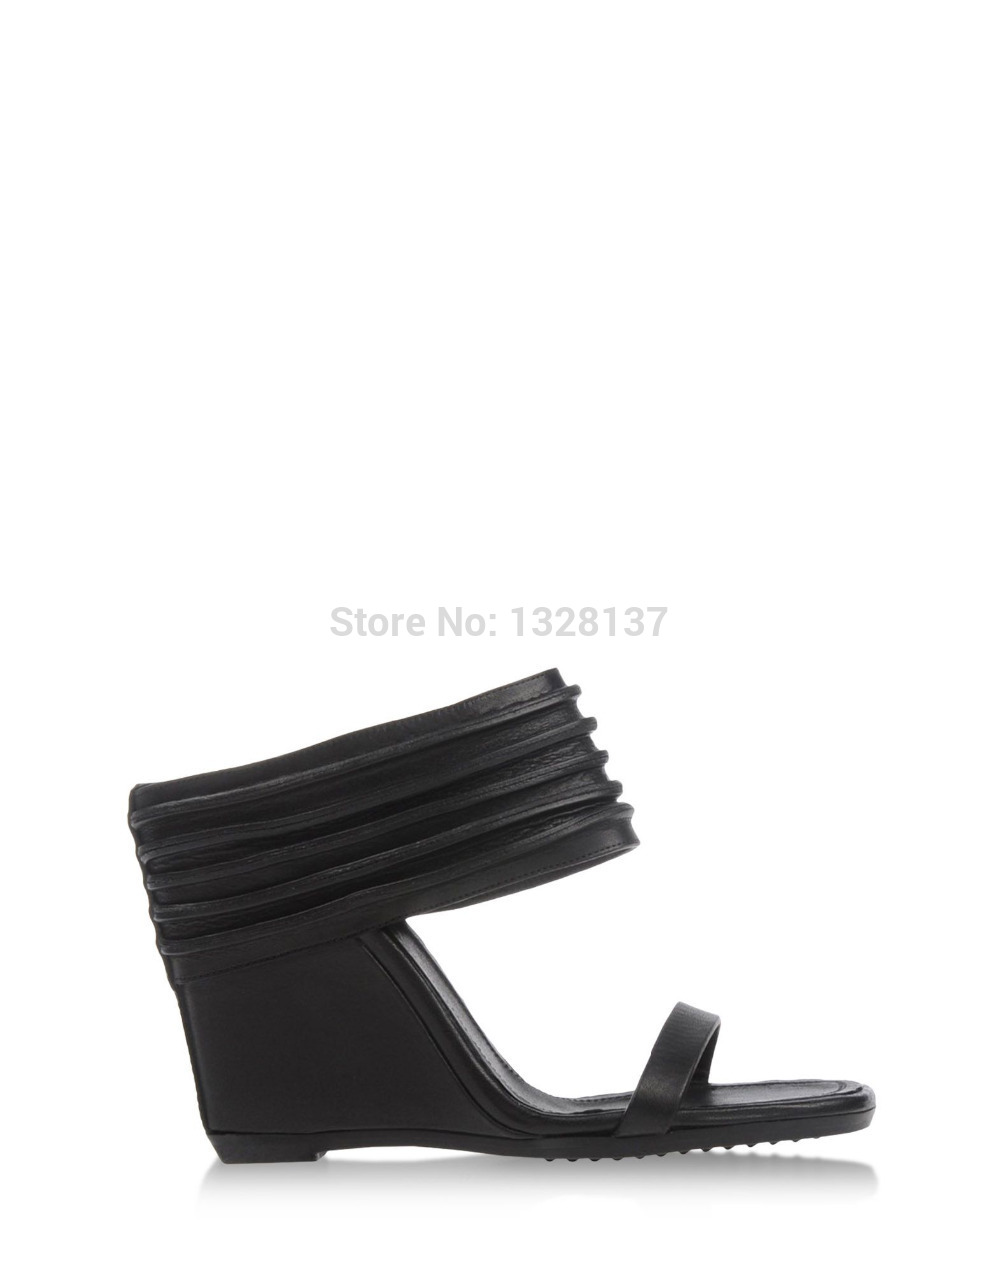 Black Fashion Soft Suede  Leather Sandalsluxury Shoes For Women Commodities Trading Platform Summer Breathable Shoes Femmes 2014<br><br>Aliexpress